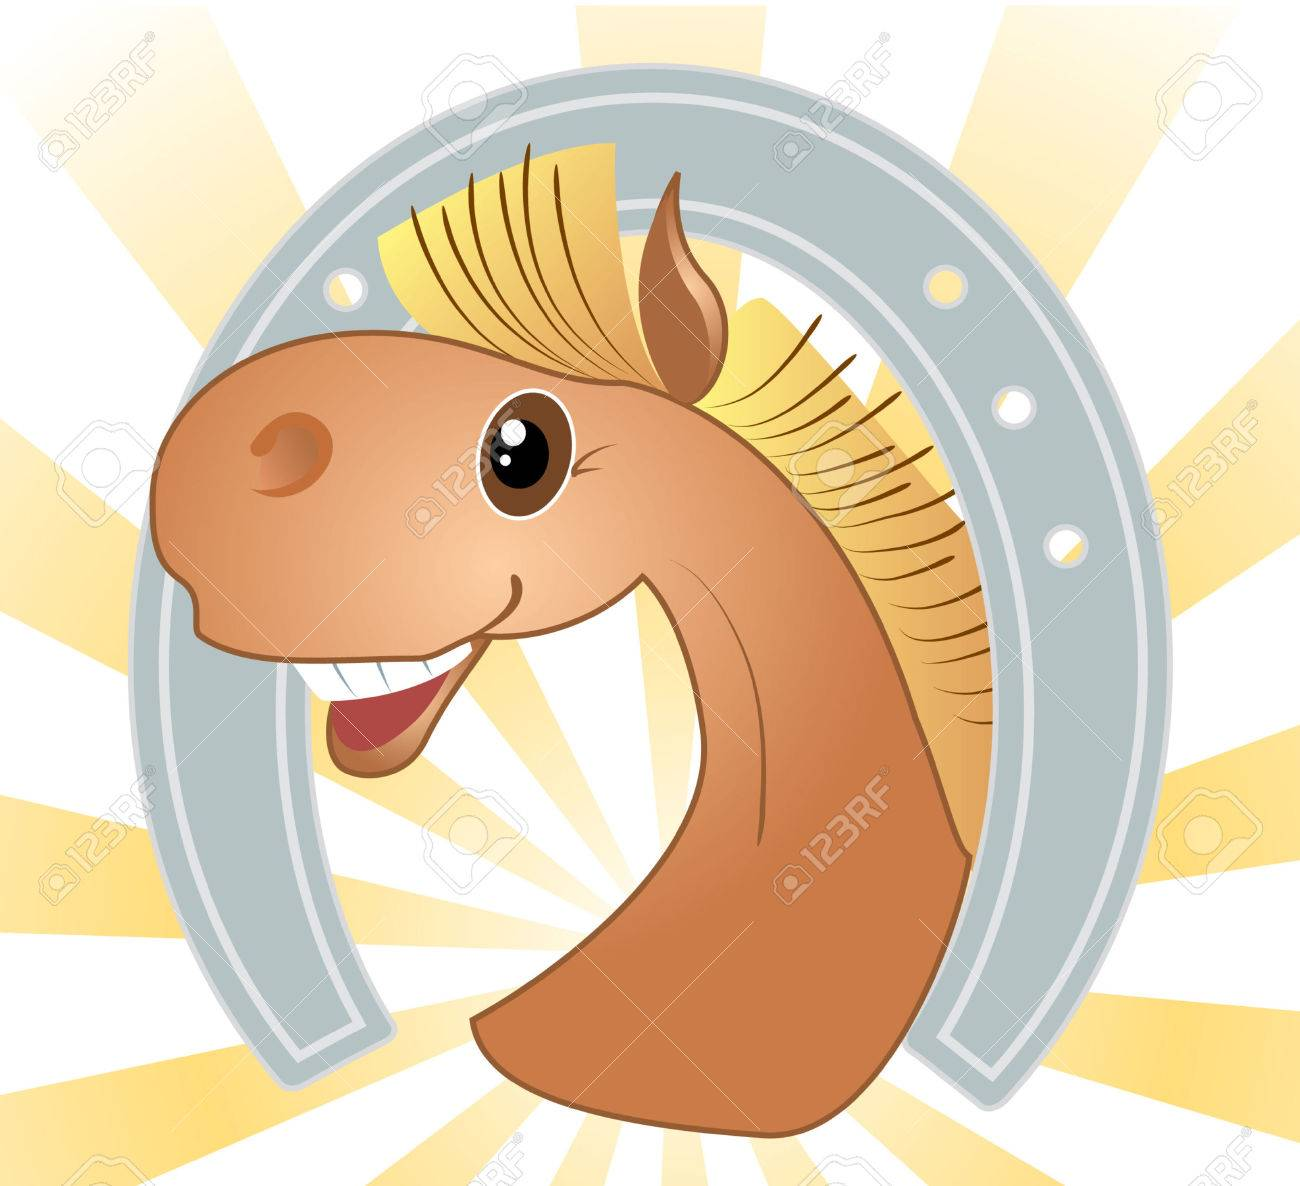 Head Of Horse And Horseshoe Cartoons Royalty Free Cliparts Vectors And Stock Illustration Image 6636702